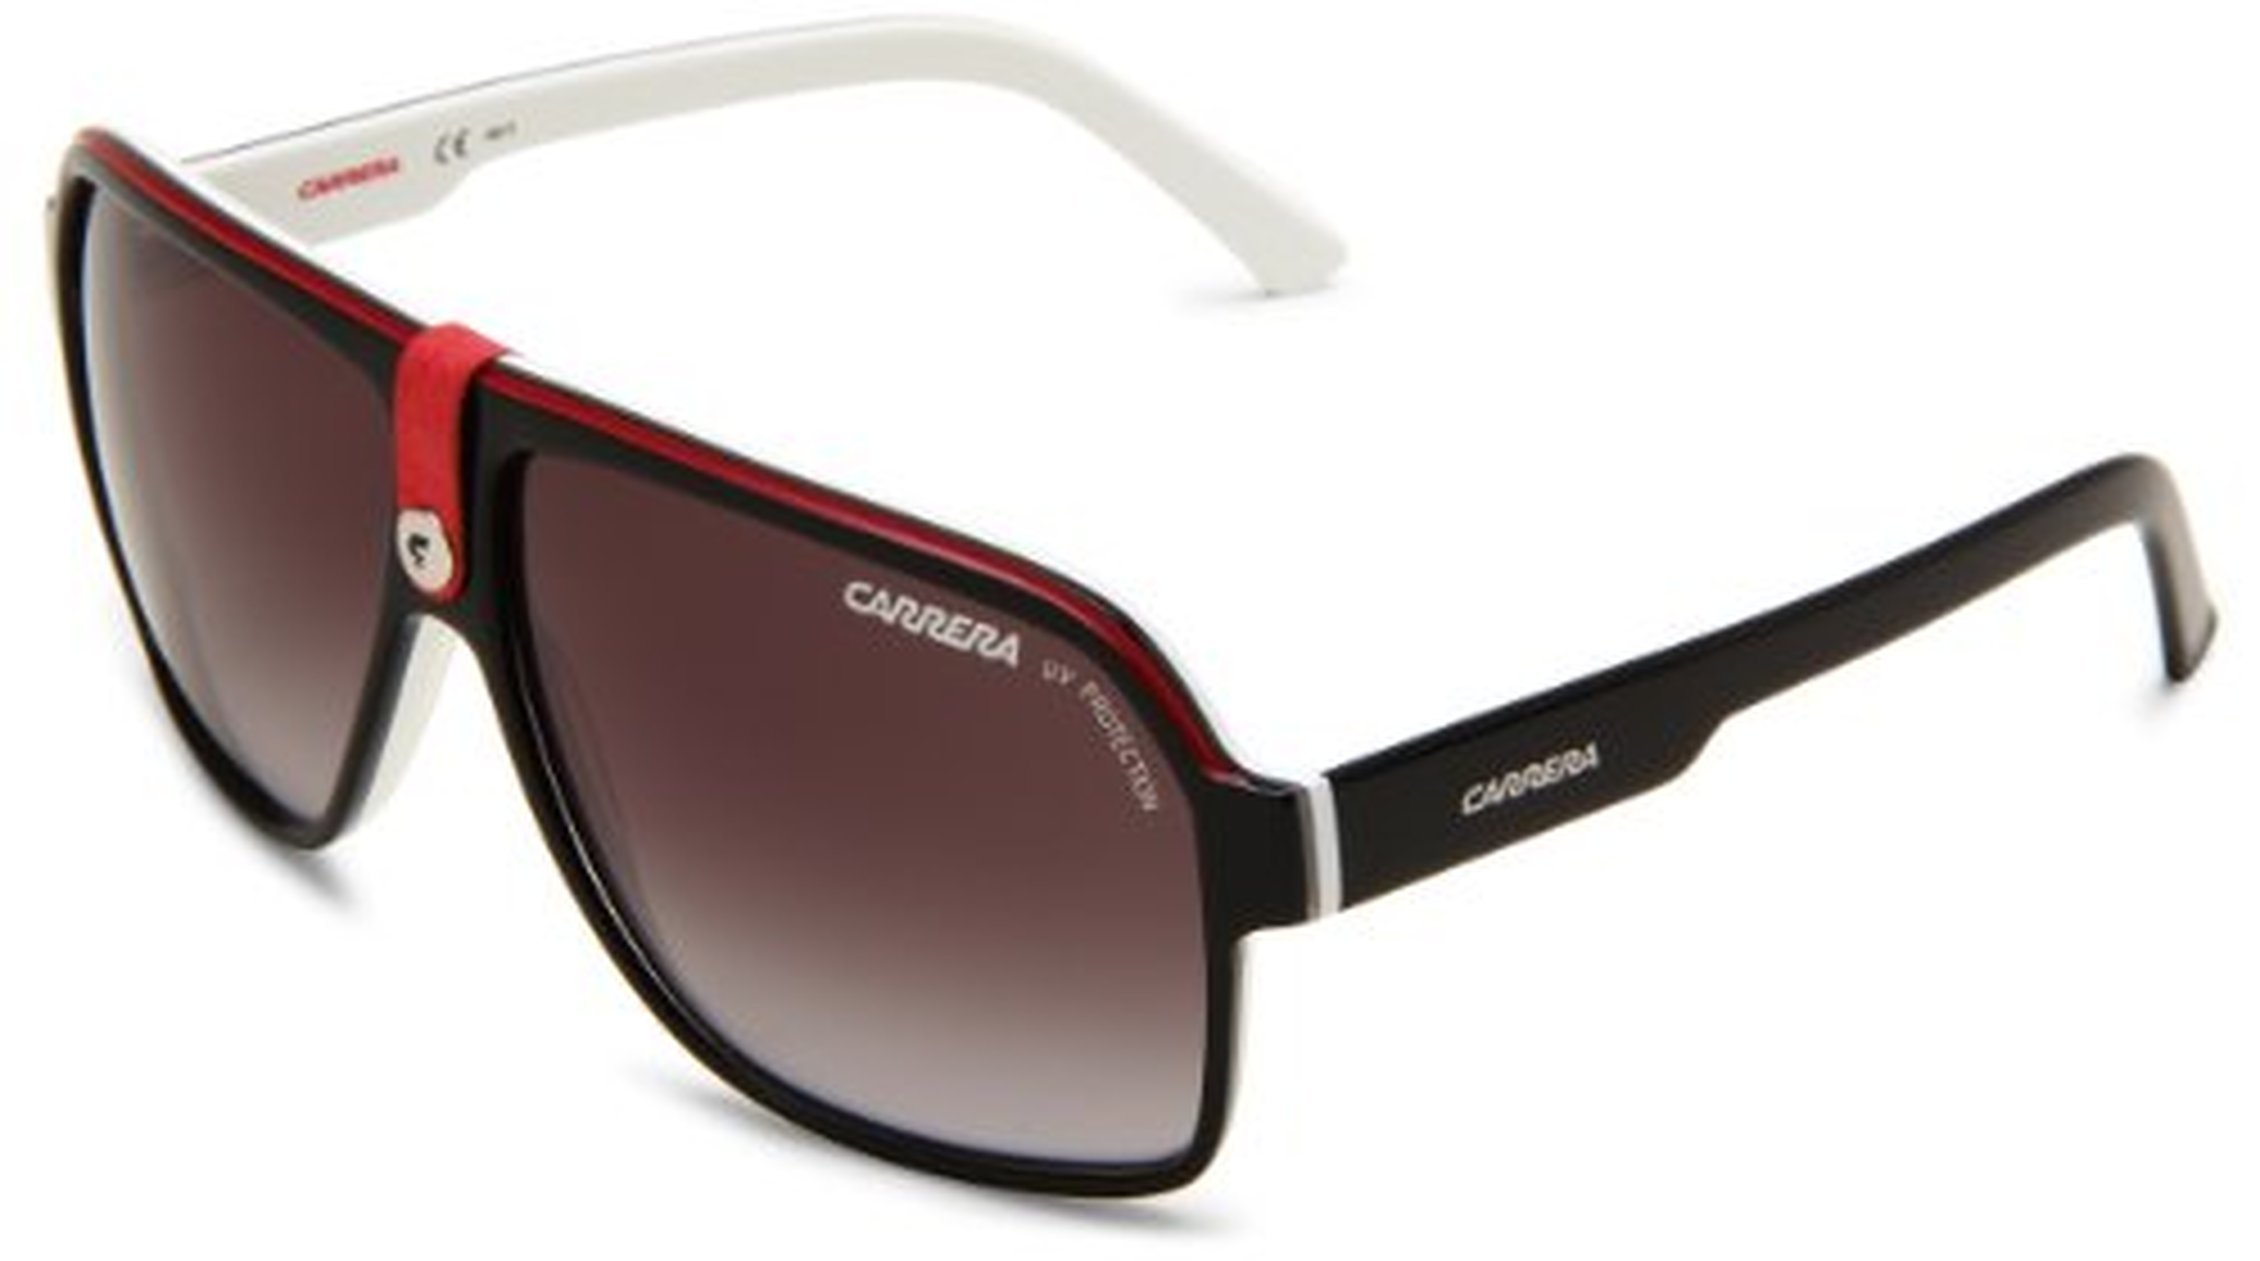 Carrera 33/S Sunglasses Black Crystal White / Gray Gradient & Cleaning Kit Bundle by Carrera